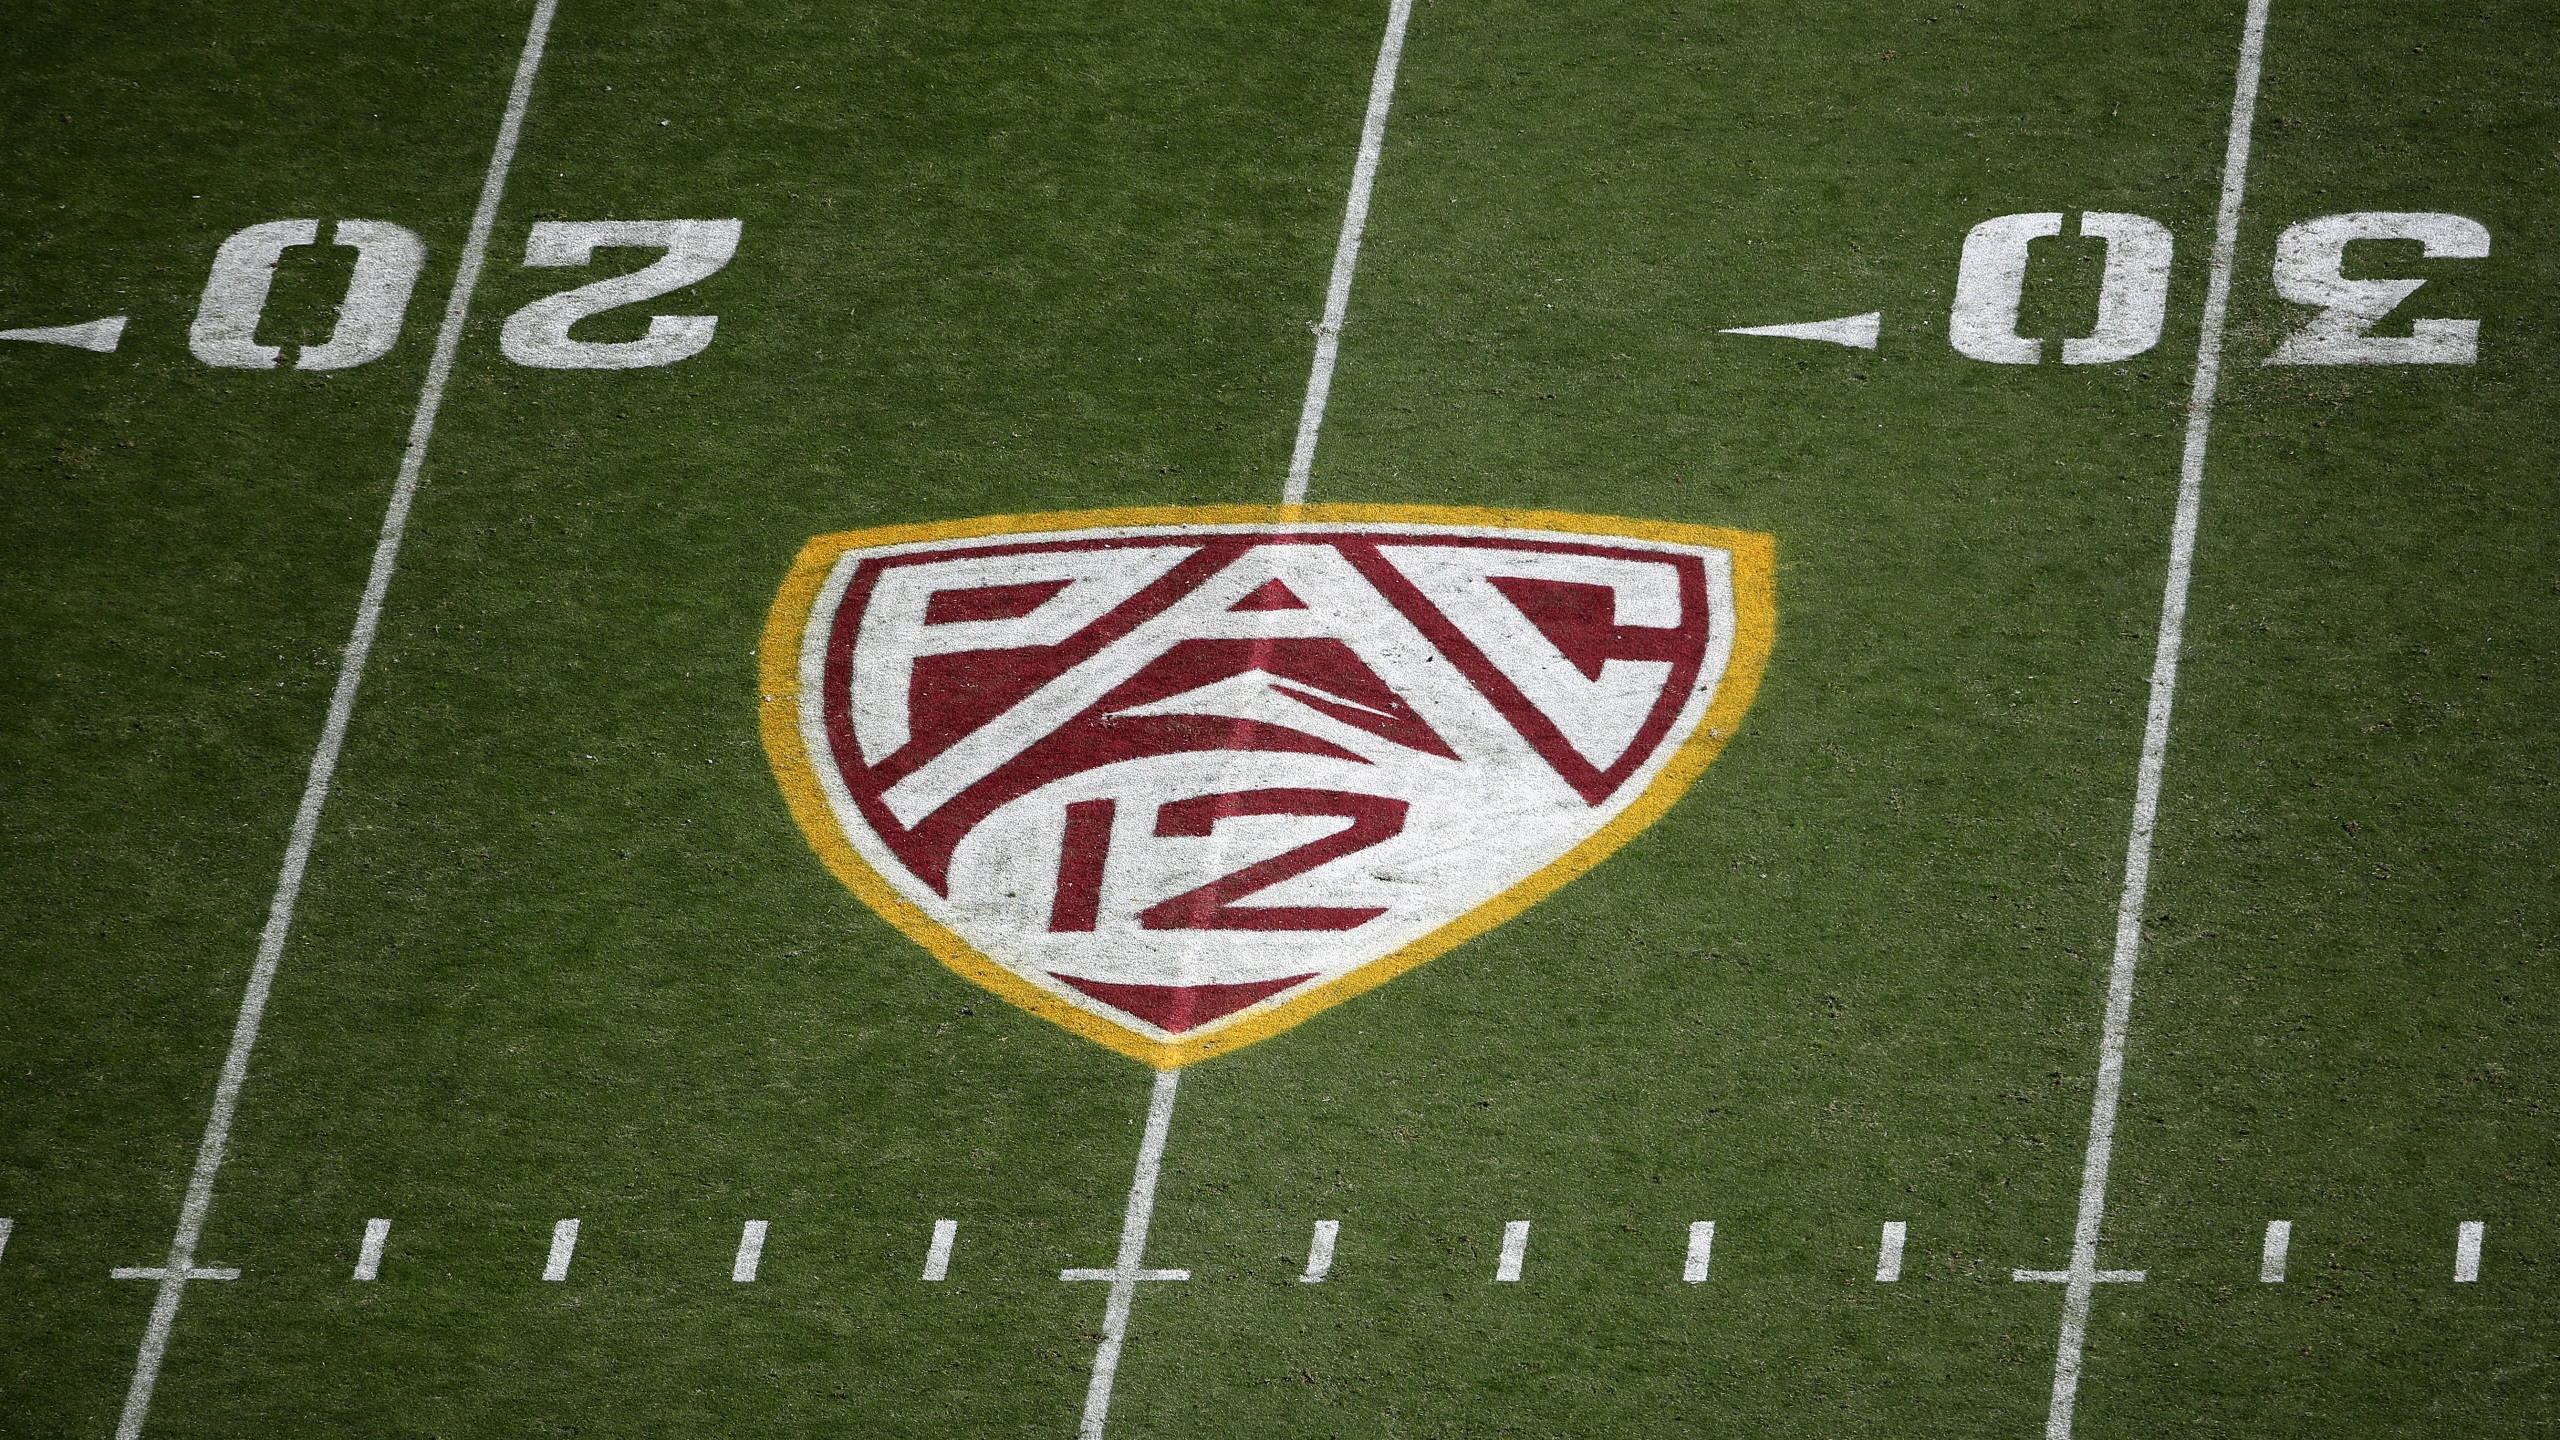 Pac-12 logo on the field during the NCAAF game at Sun Devil Stadium on November 09, 2019 in Tempe, Arizona. (Christian Petersen/Getty Images)